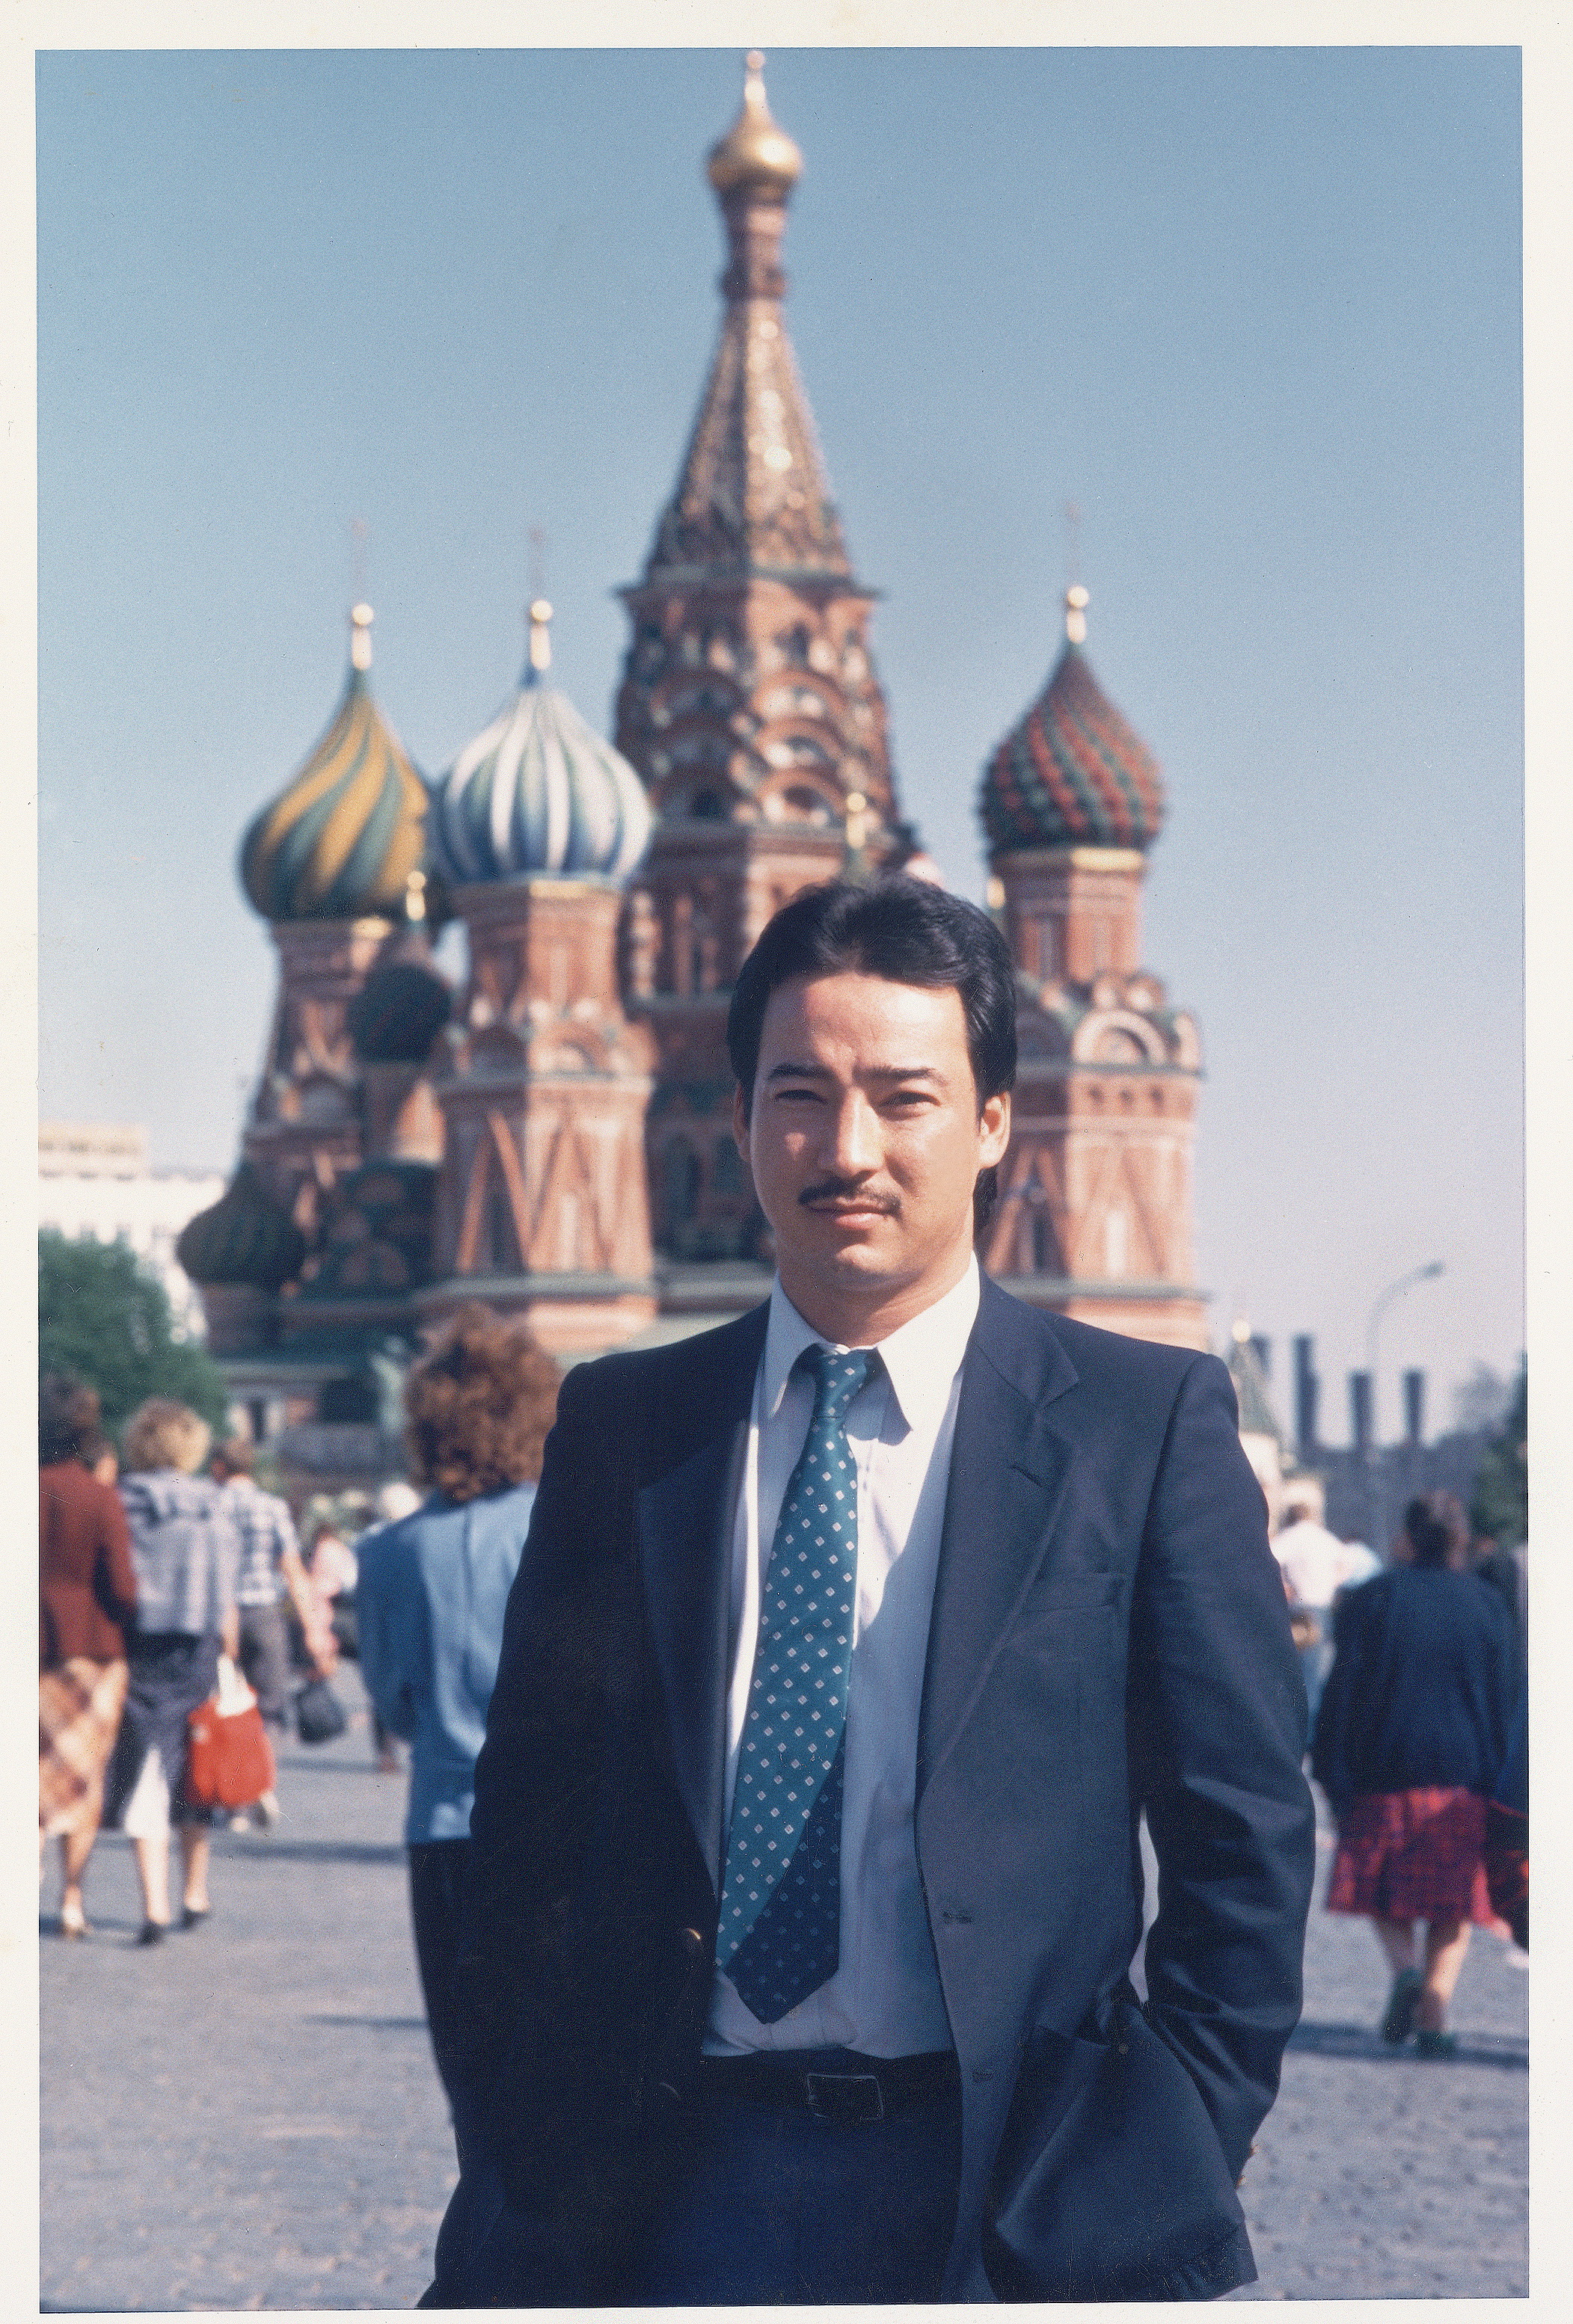 In front of St. Basils in Moscow during one of the Ronald Reagan/Michael Gorbachev summits in the 1980's.